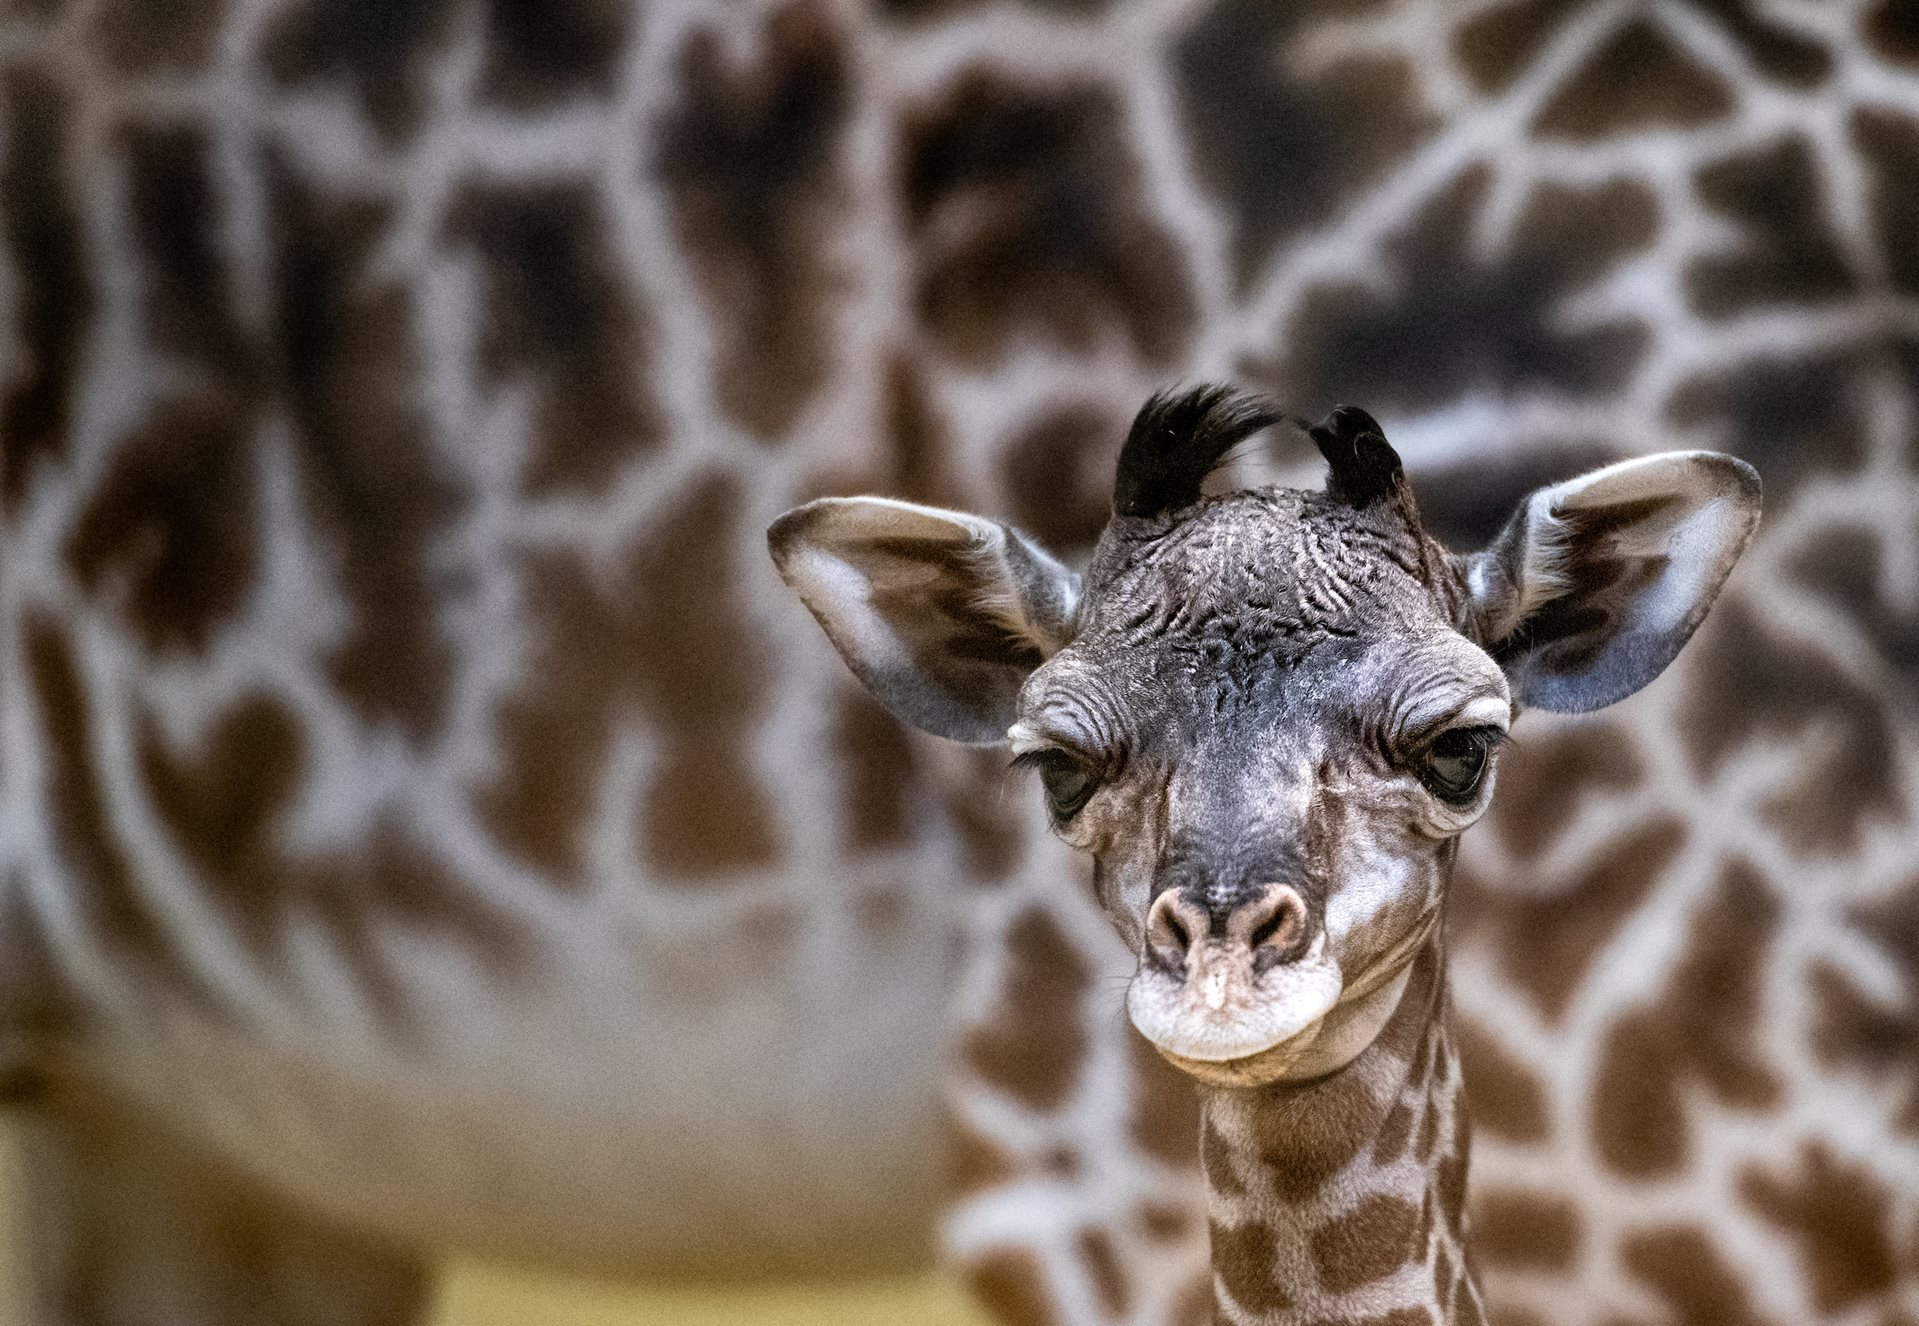 Cleveland Metroparks Zoo Welcomes New Giraffe Calf